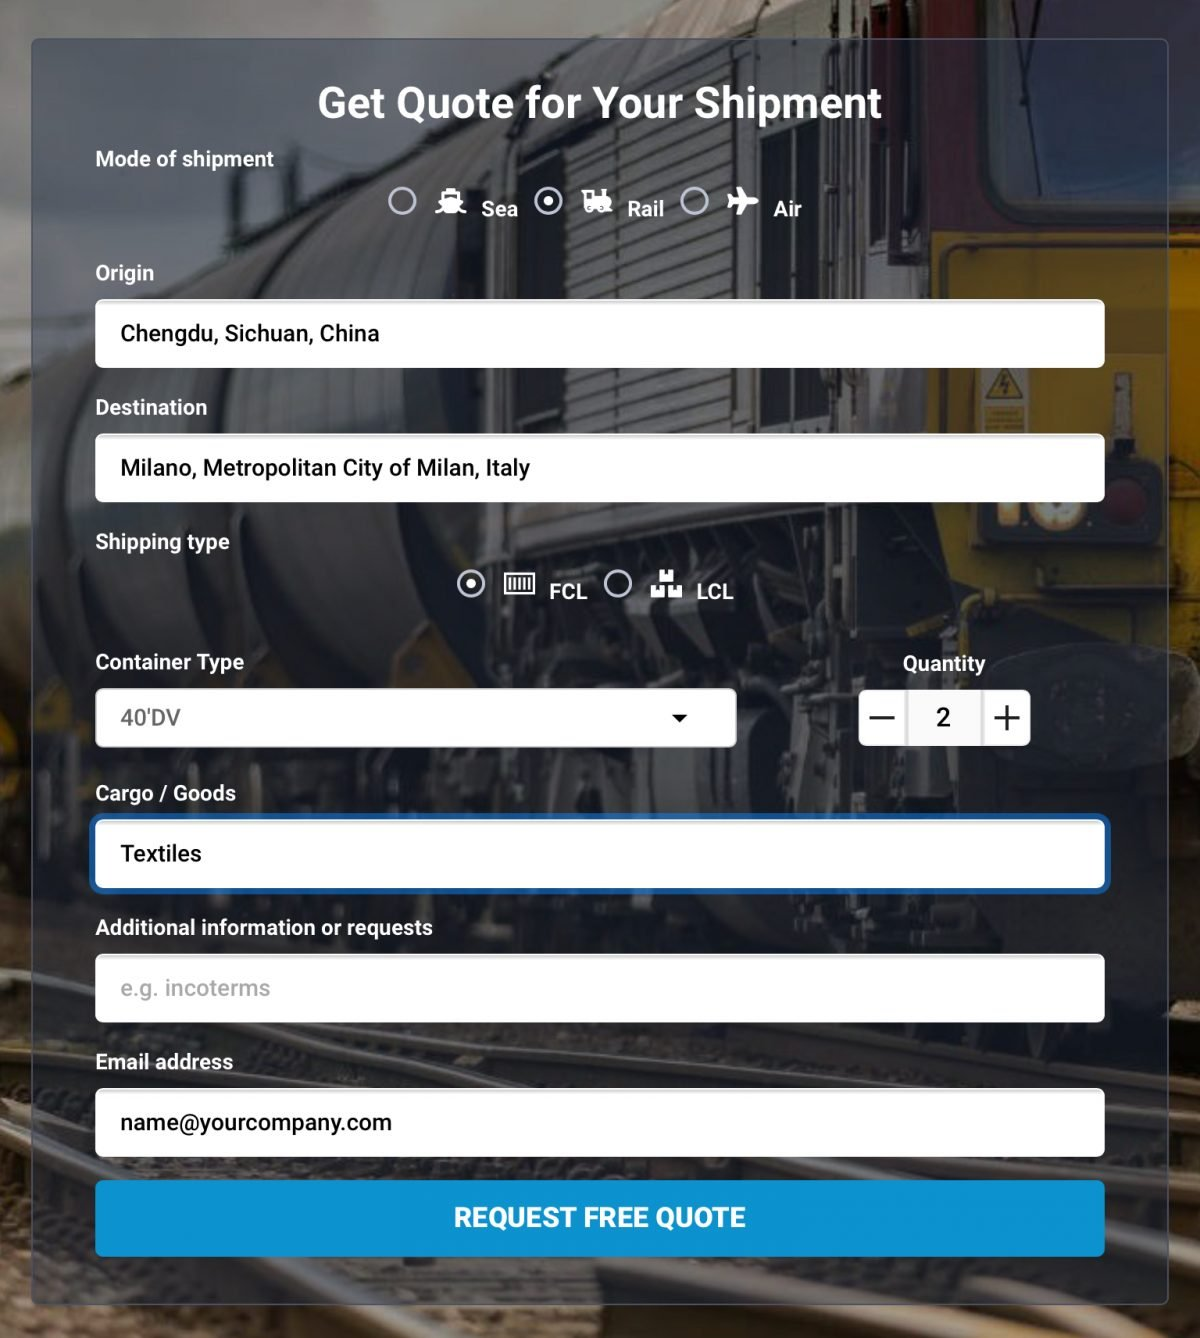 Request a free quote from China